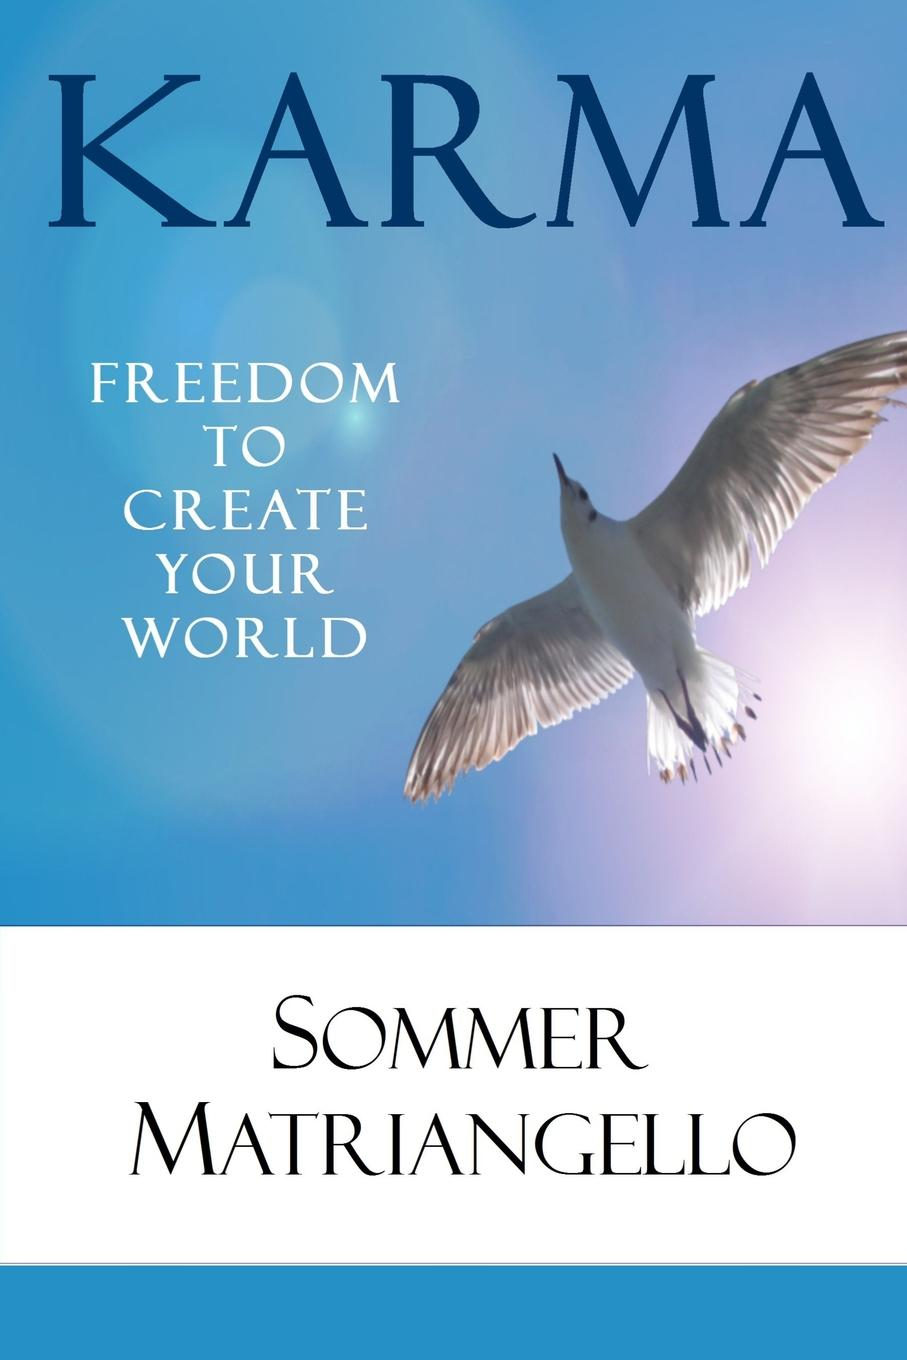 Sommer Matriangello Karma. The Freedom To Create Your World we the people